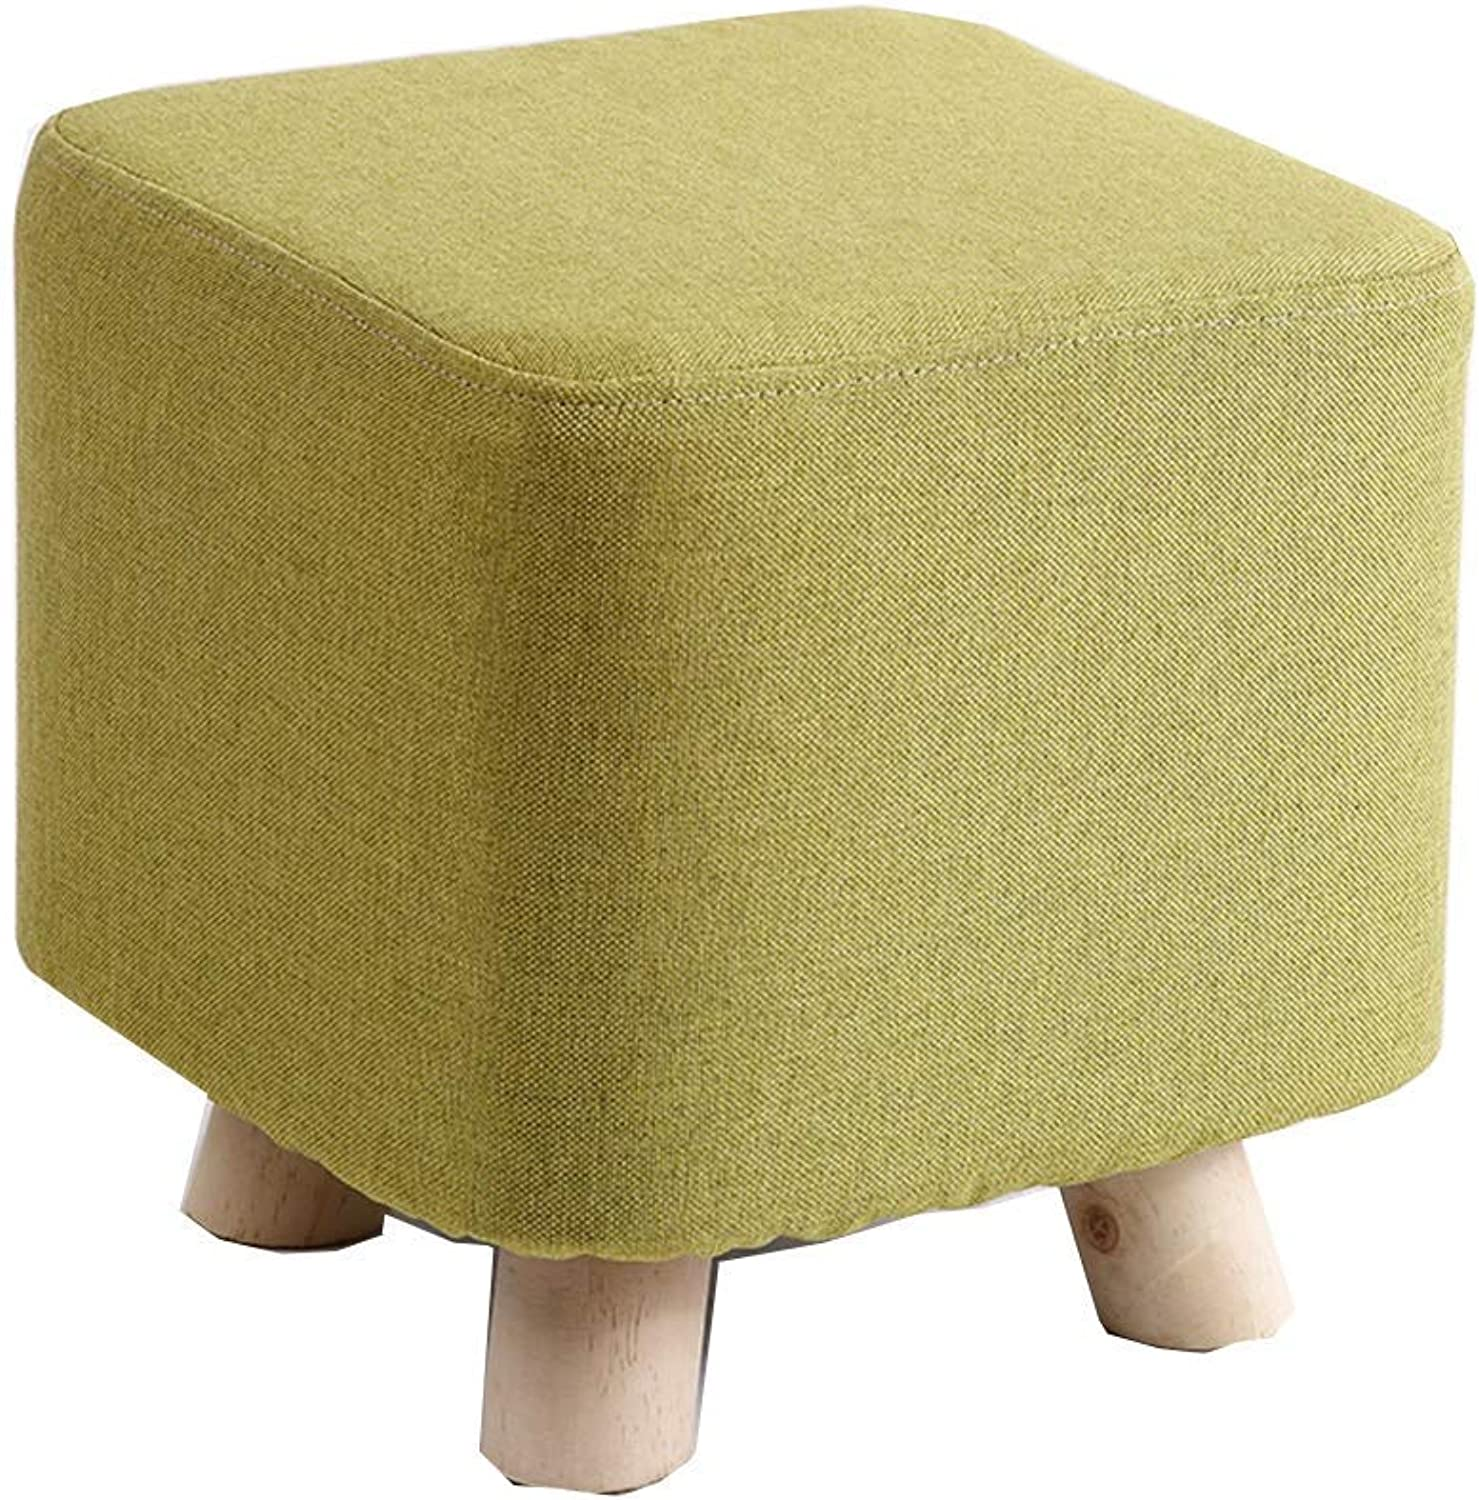 ChenDz Cute Stool Cloth Stool Fashion Modern Small Bench Coffee Table Stool Home Creative Stool Living Room Adult Solid Wood Sofa Stool for Living Room Corridor Green